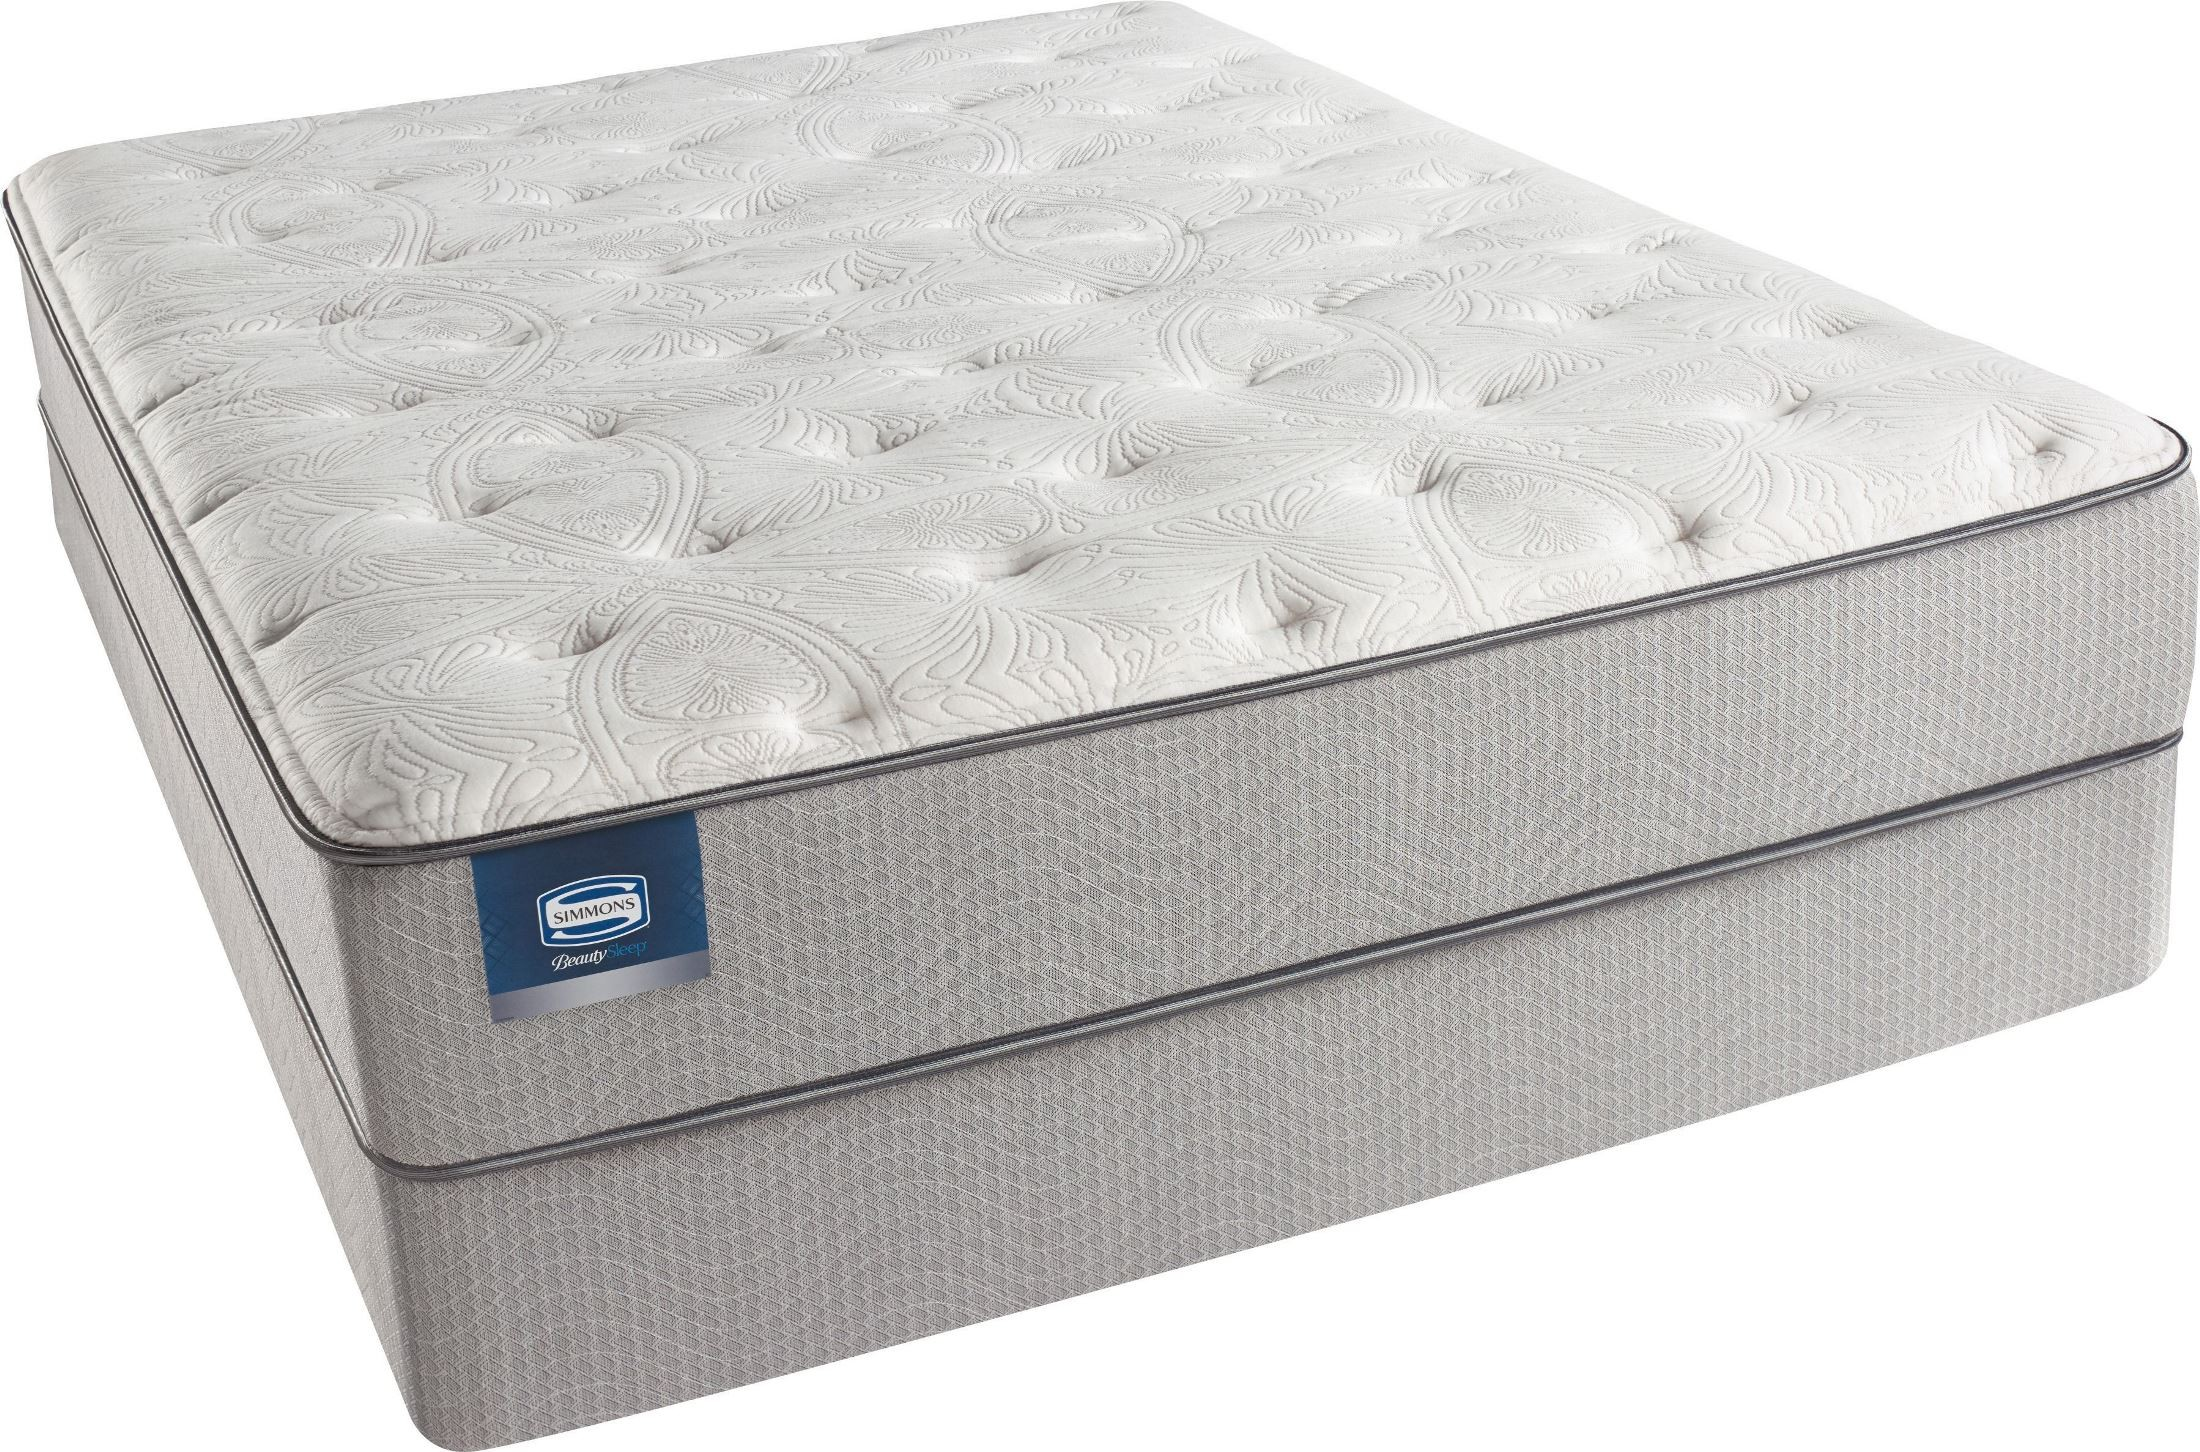 Beautysleep Areca Palm Queen Firm Mattress Beautysleep